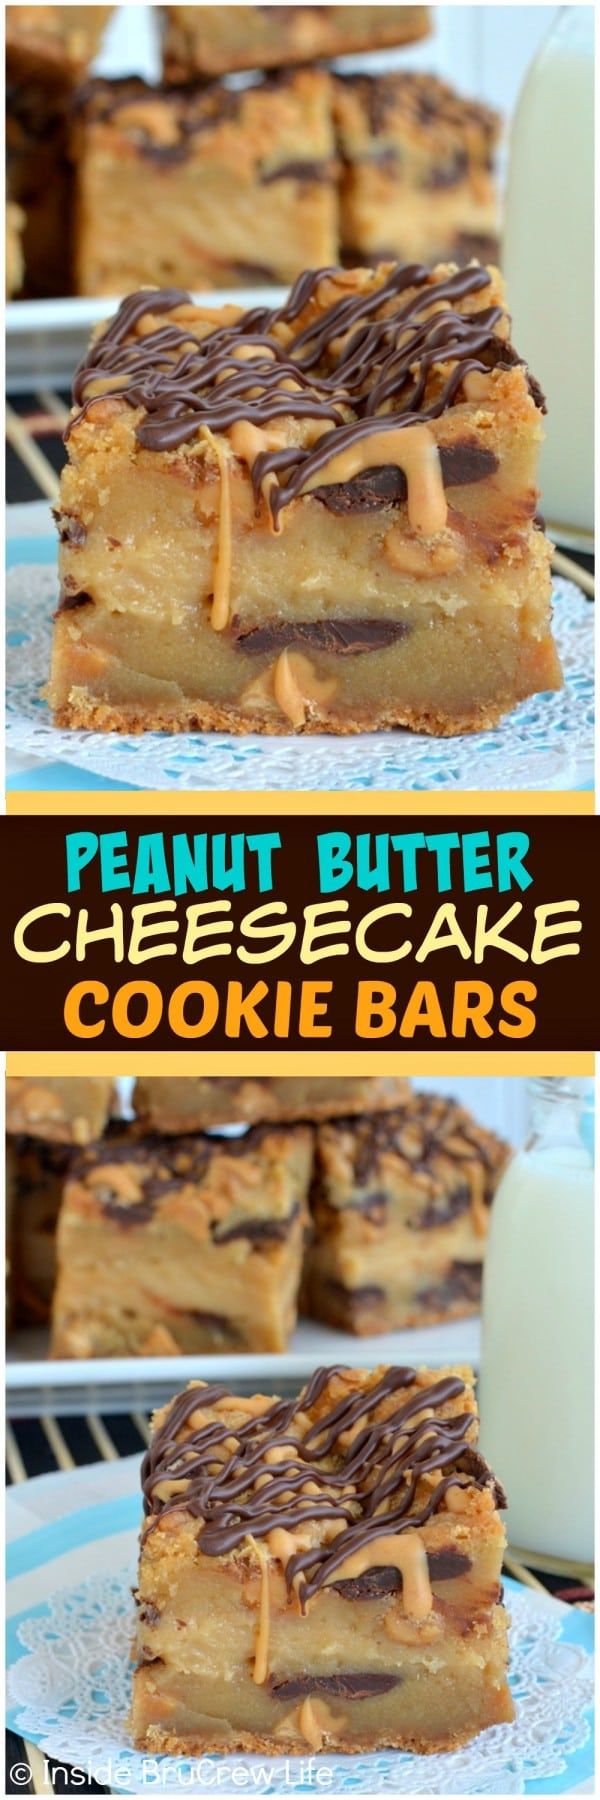 Peanut Butter Cheesecake Cookie Bars - peanut butter cookies layered with peanut butter cheesecake and chocolate make this perfect for the peanut butter lover! Awesome dessert recipe!